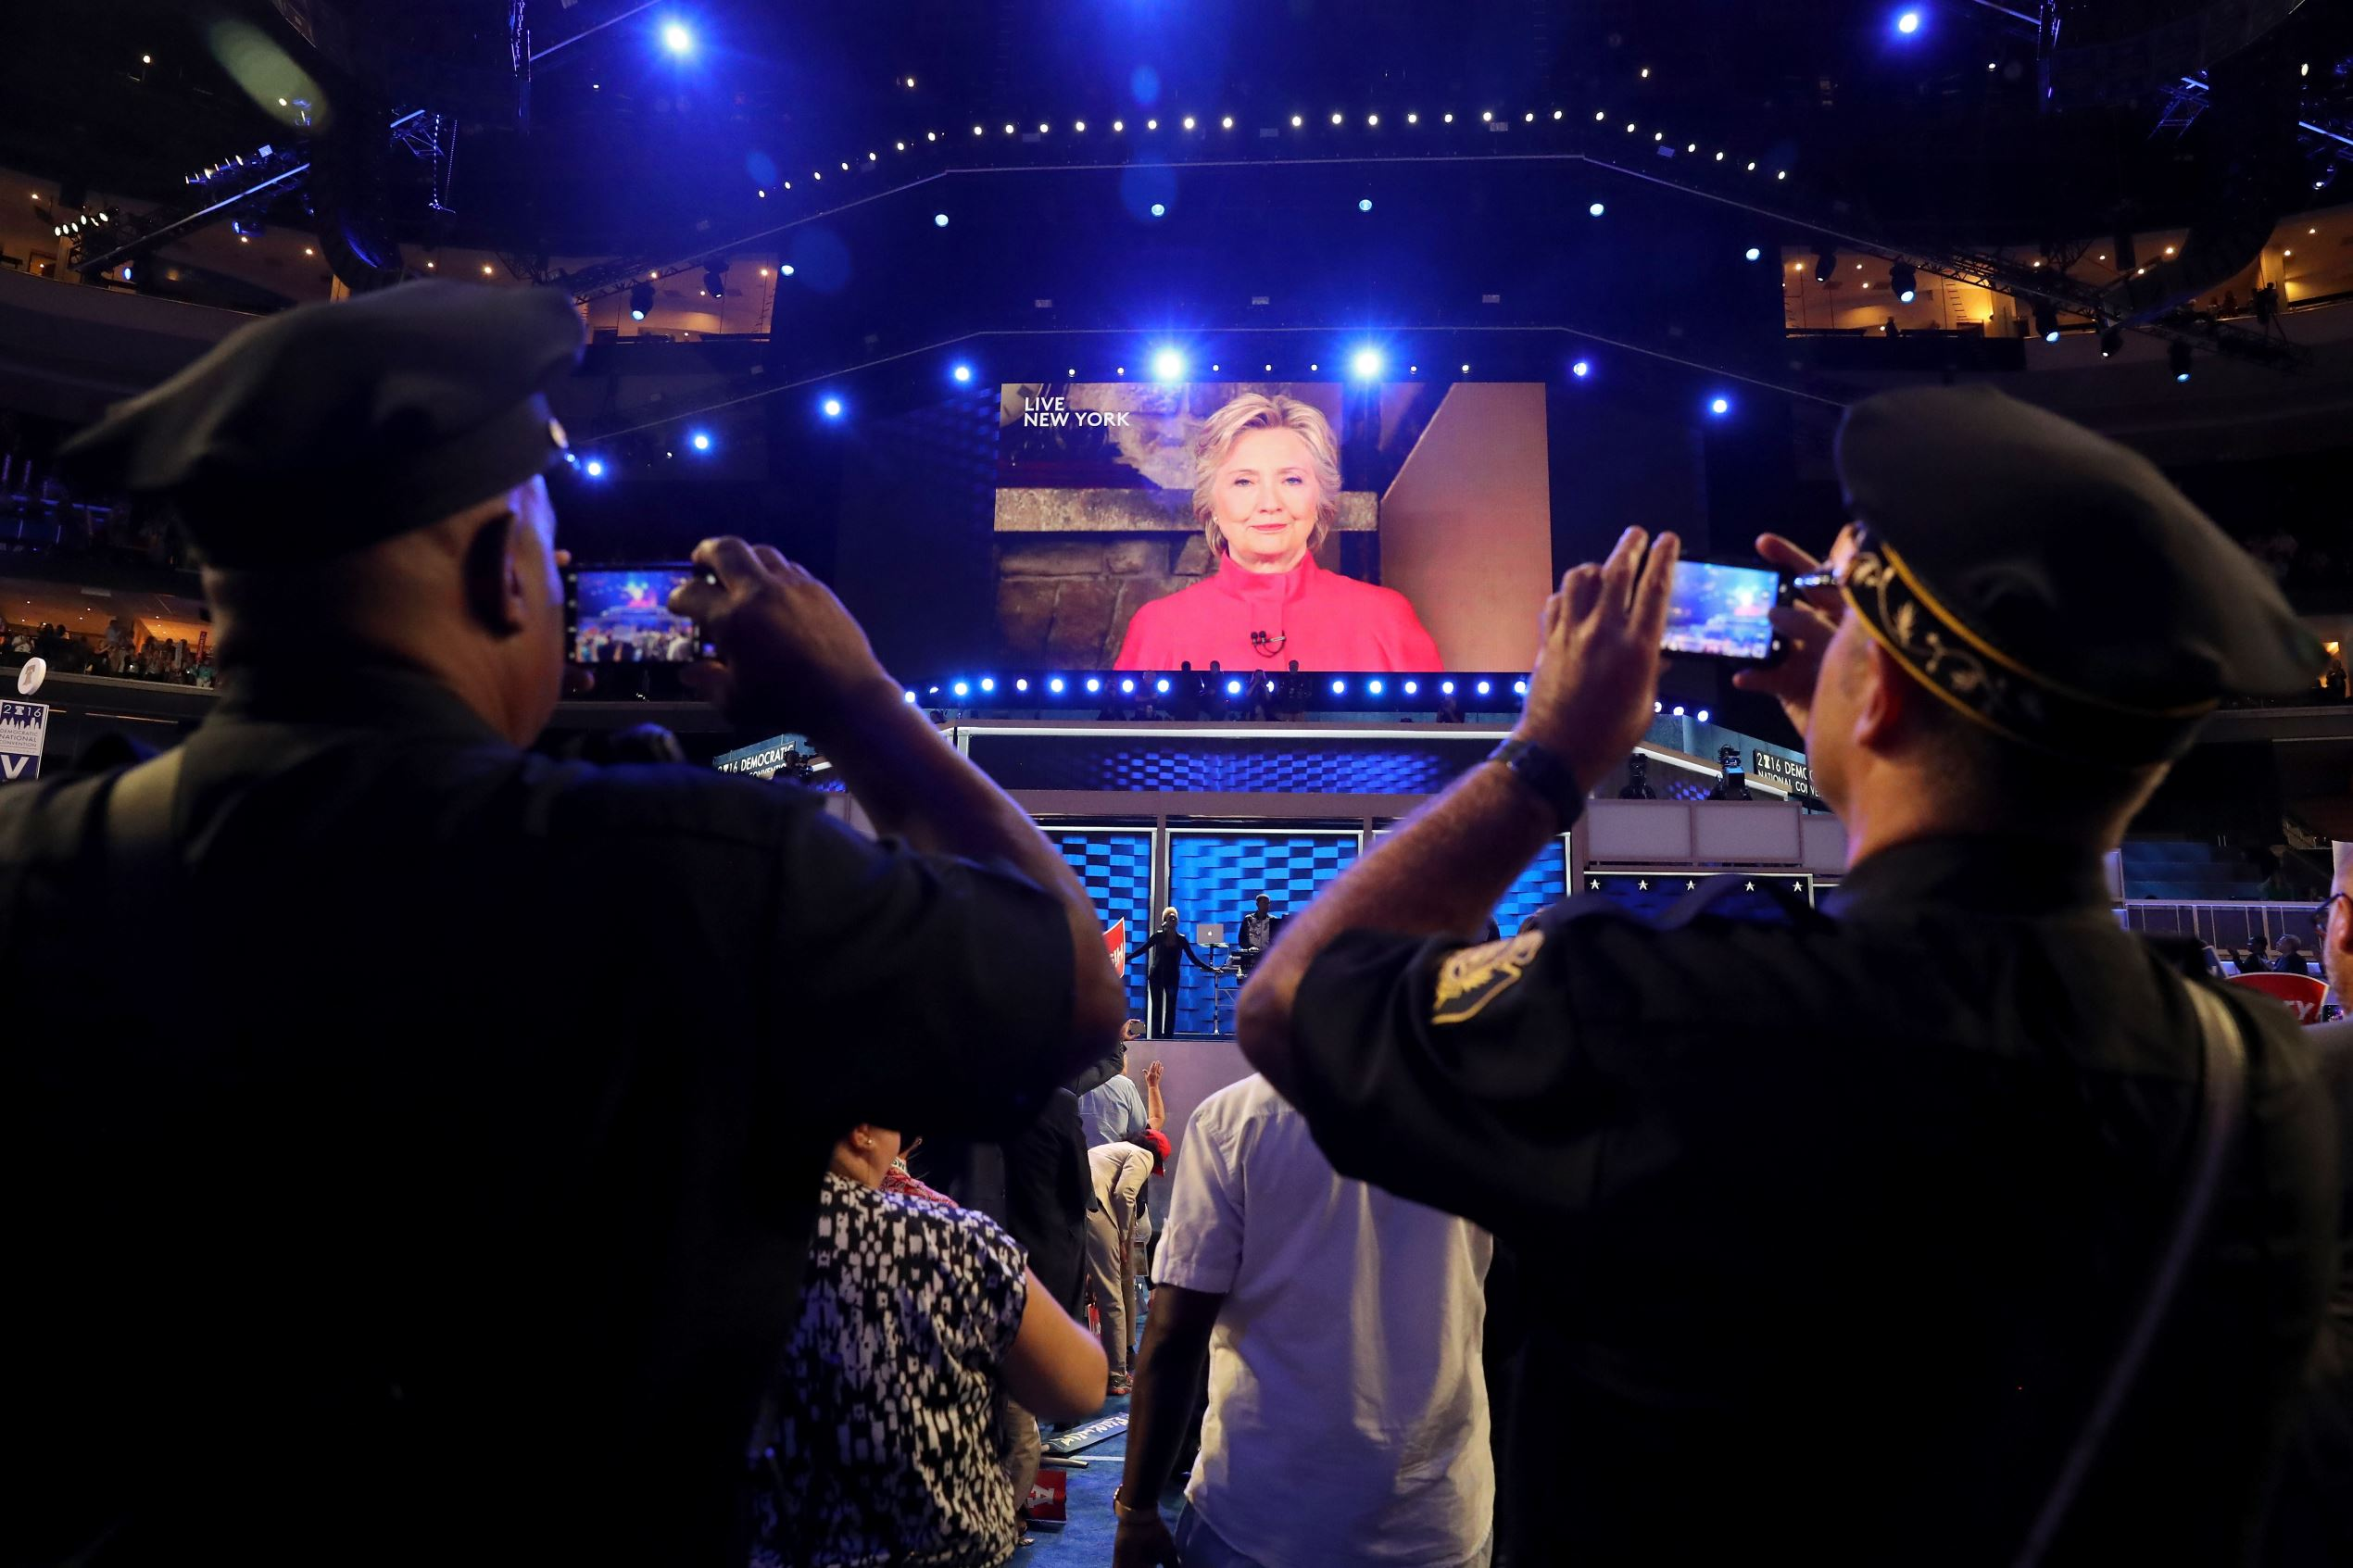 A screen displays Democratic presidential candidate Hillary Clinton delivering remarks to the crowd during the evening session on the second day of the Democratic National Convention at the Wells Fargo Center, July 26, 2016 in Philadelphia, Pennsylvania.